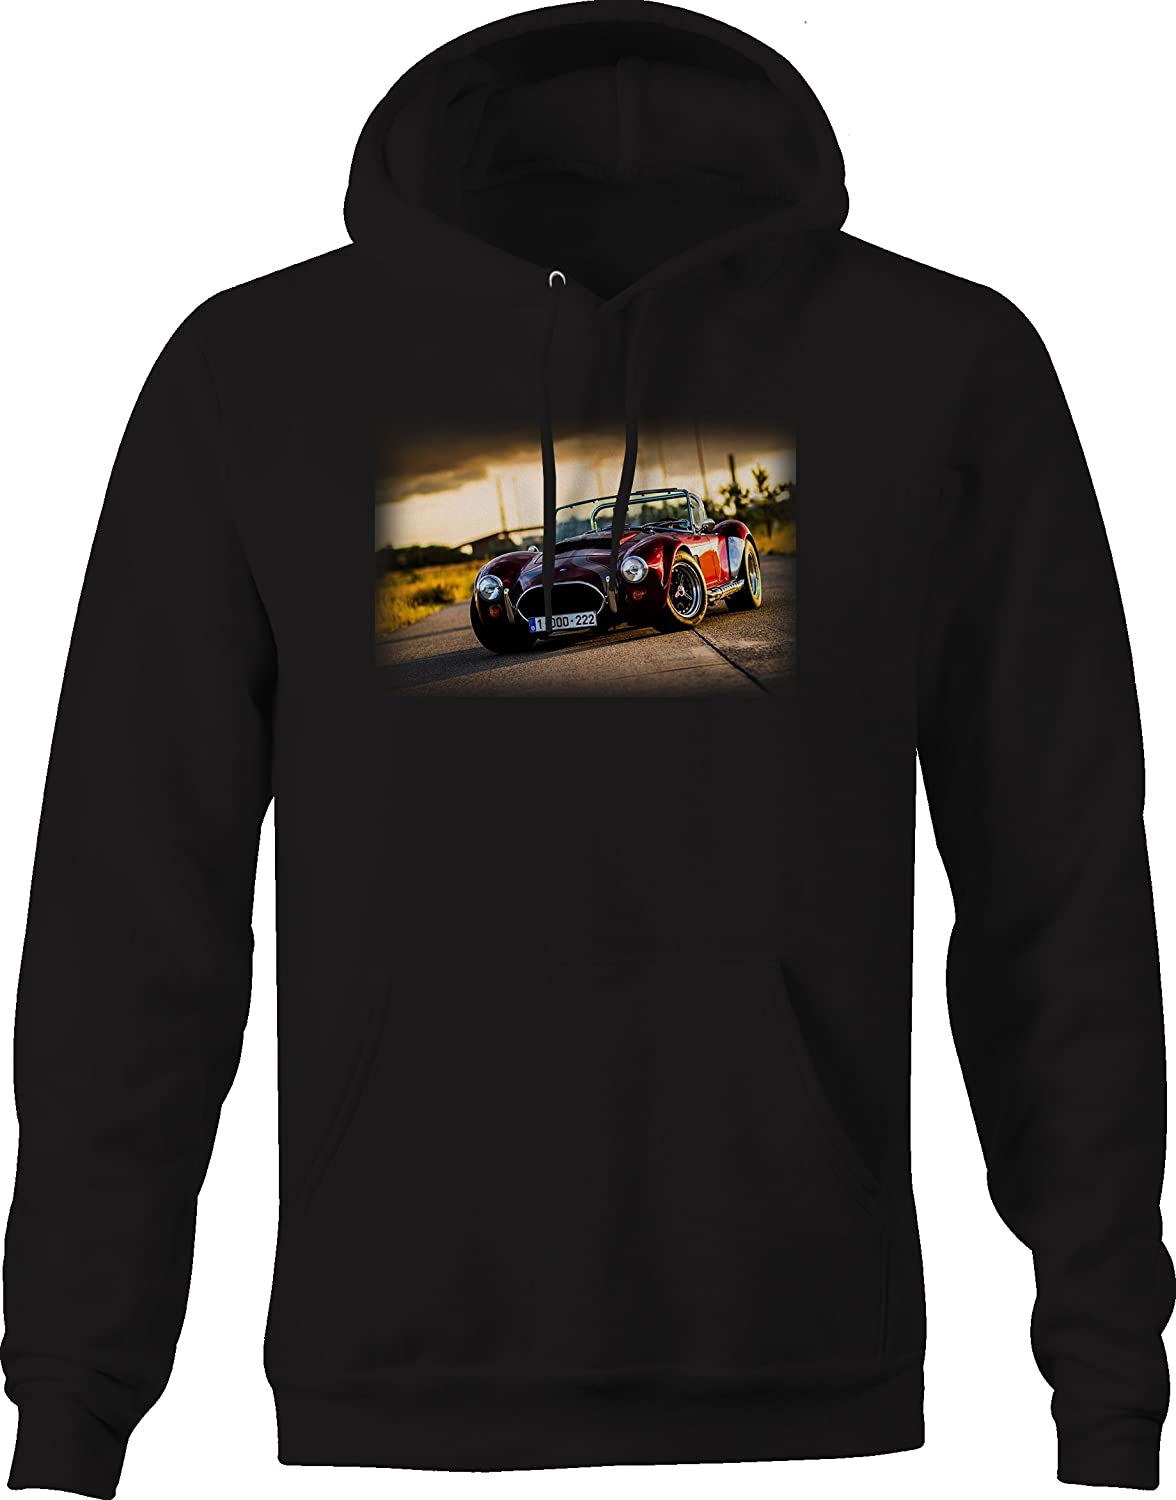 Bold Imprints Convertible Roadster Coupe Shelby Racing European Graphic Hoodie for Men